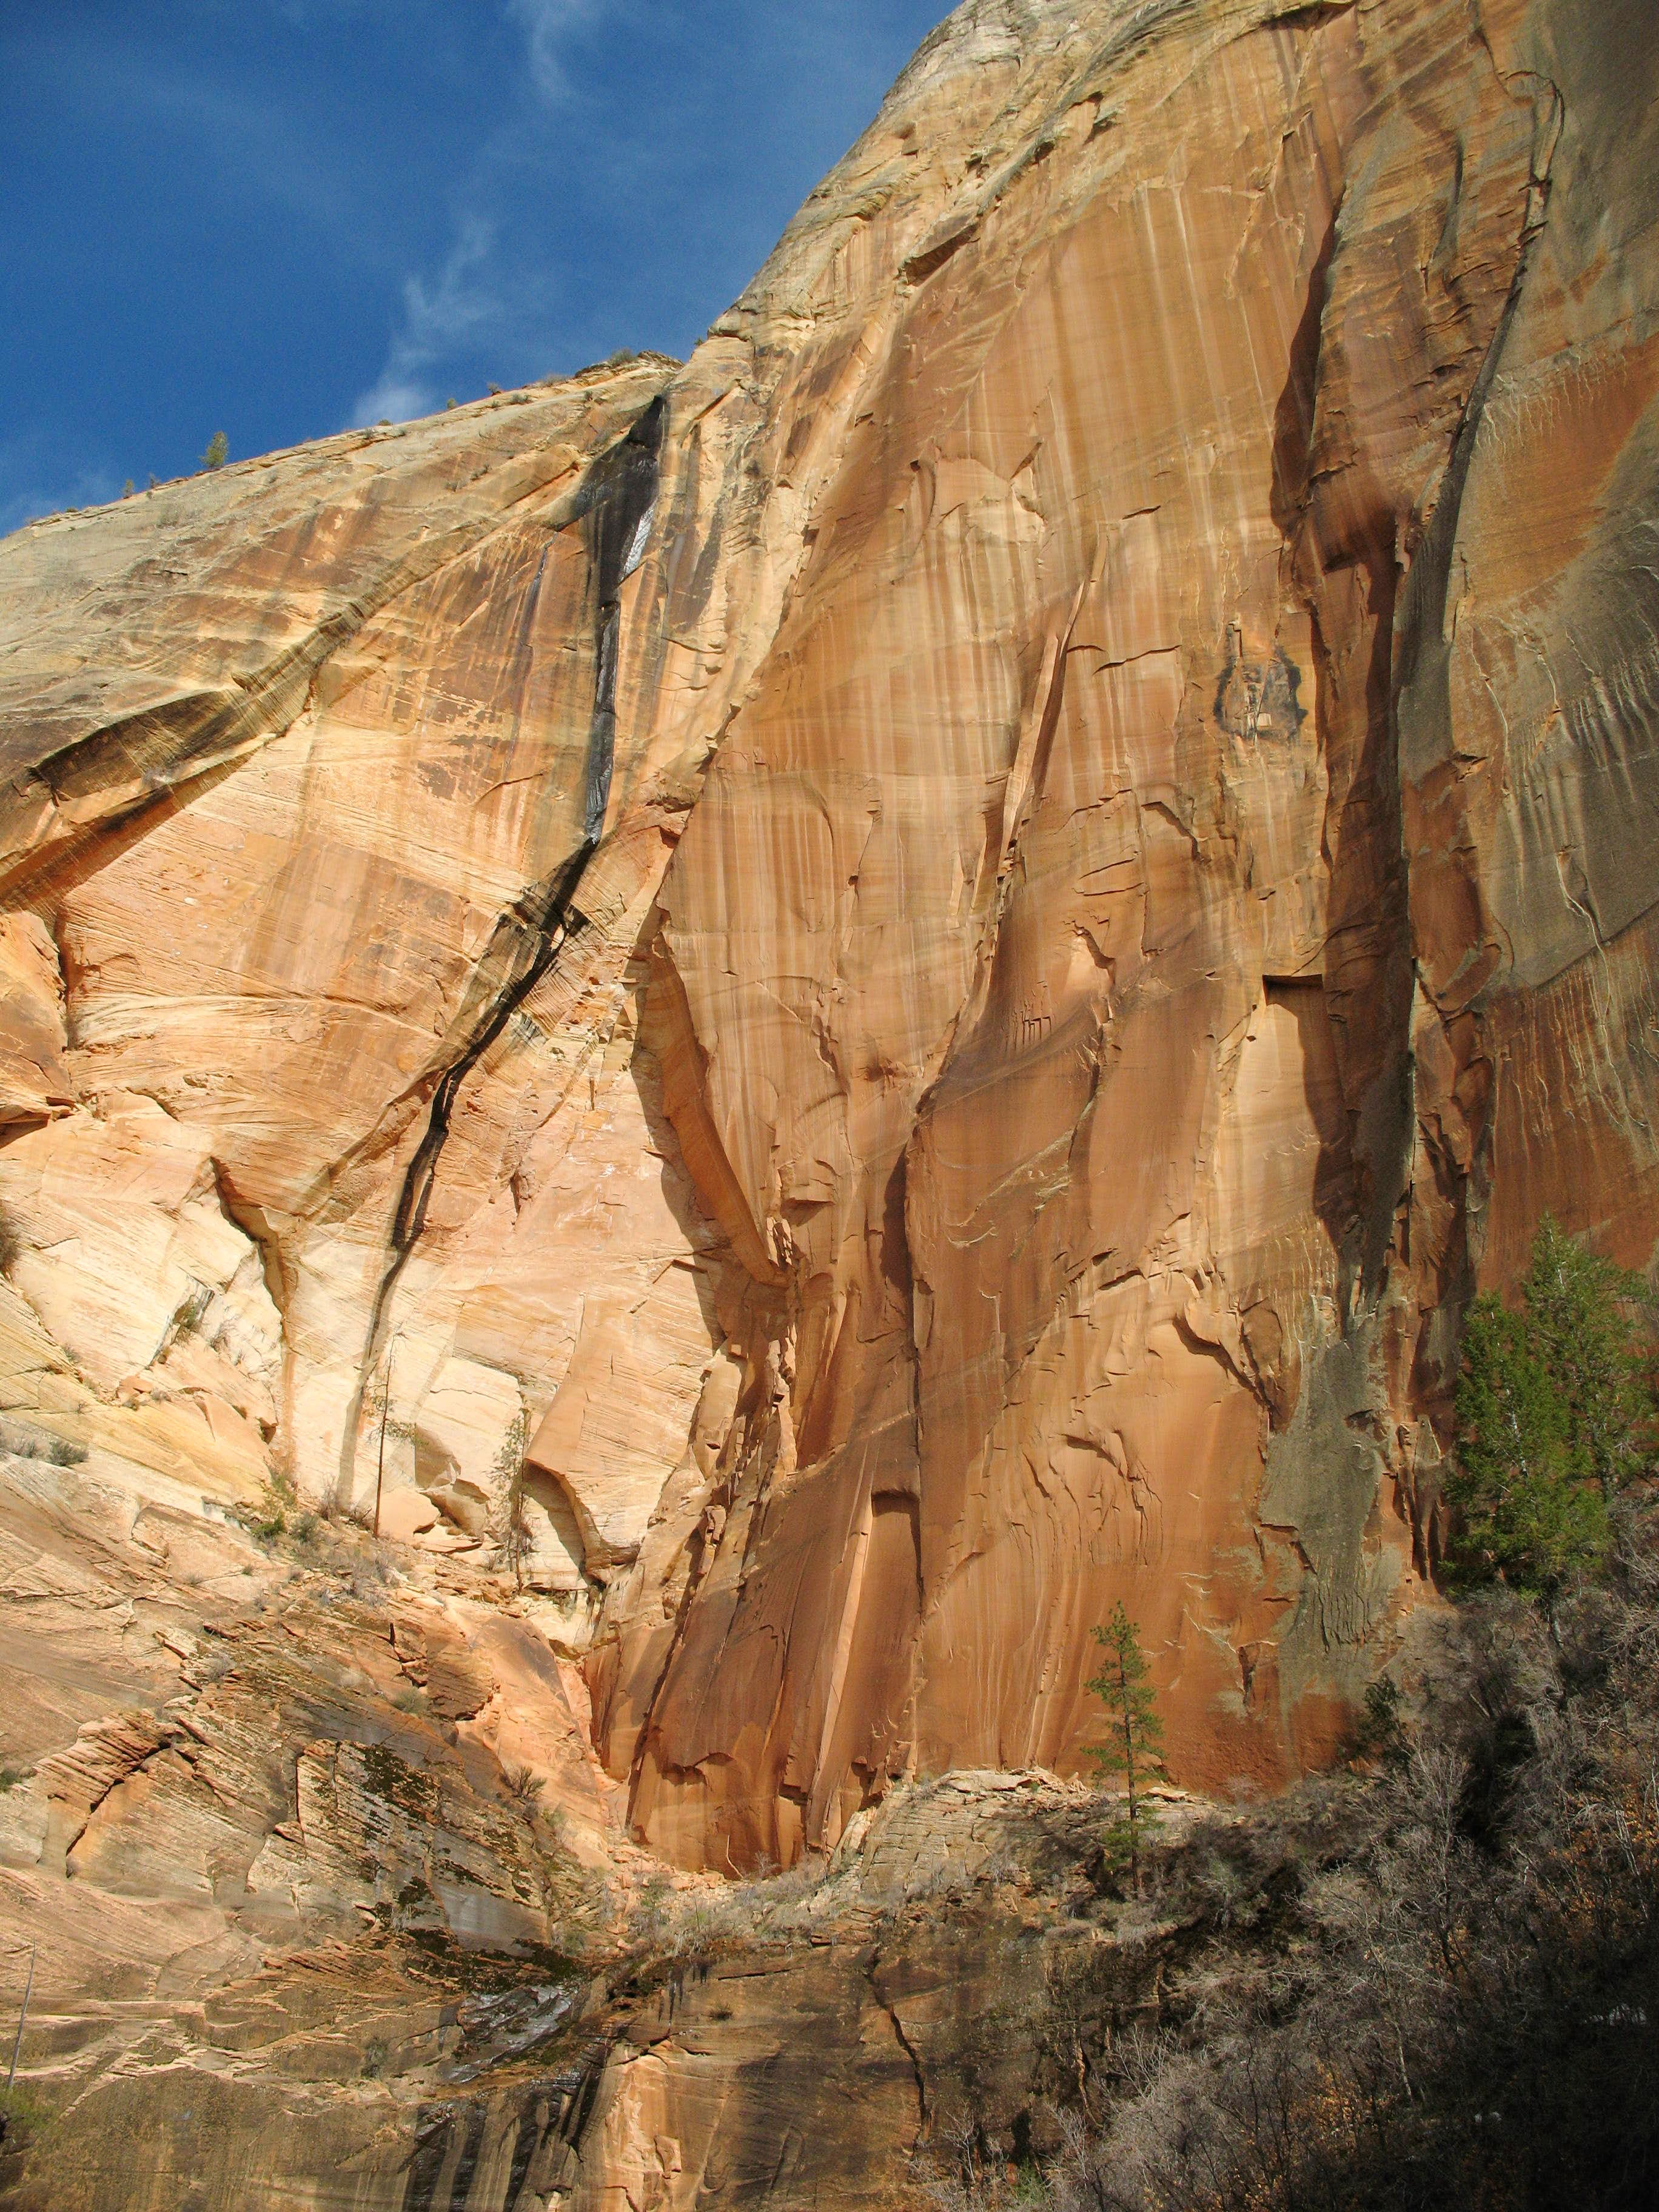 The Spectacular Cliffs of Zion